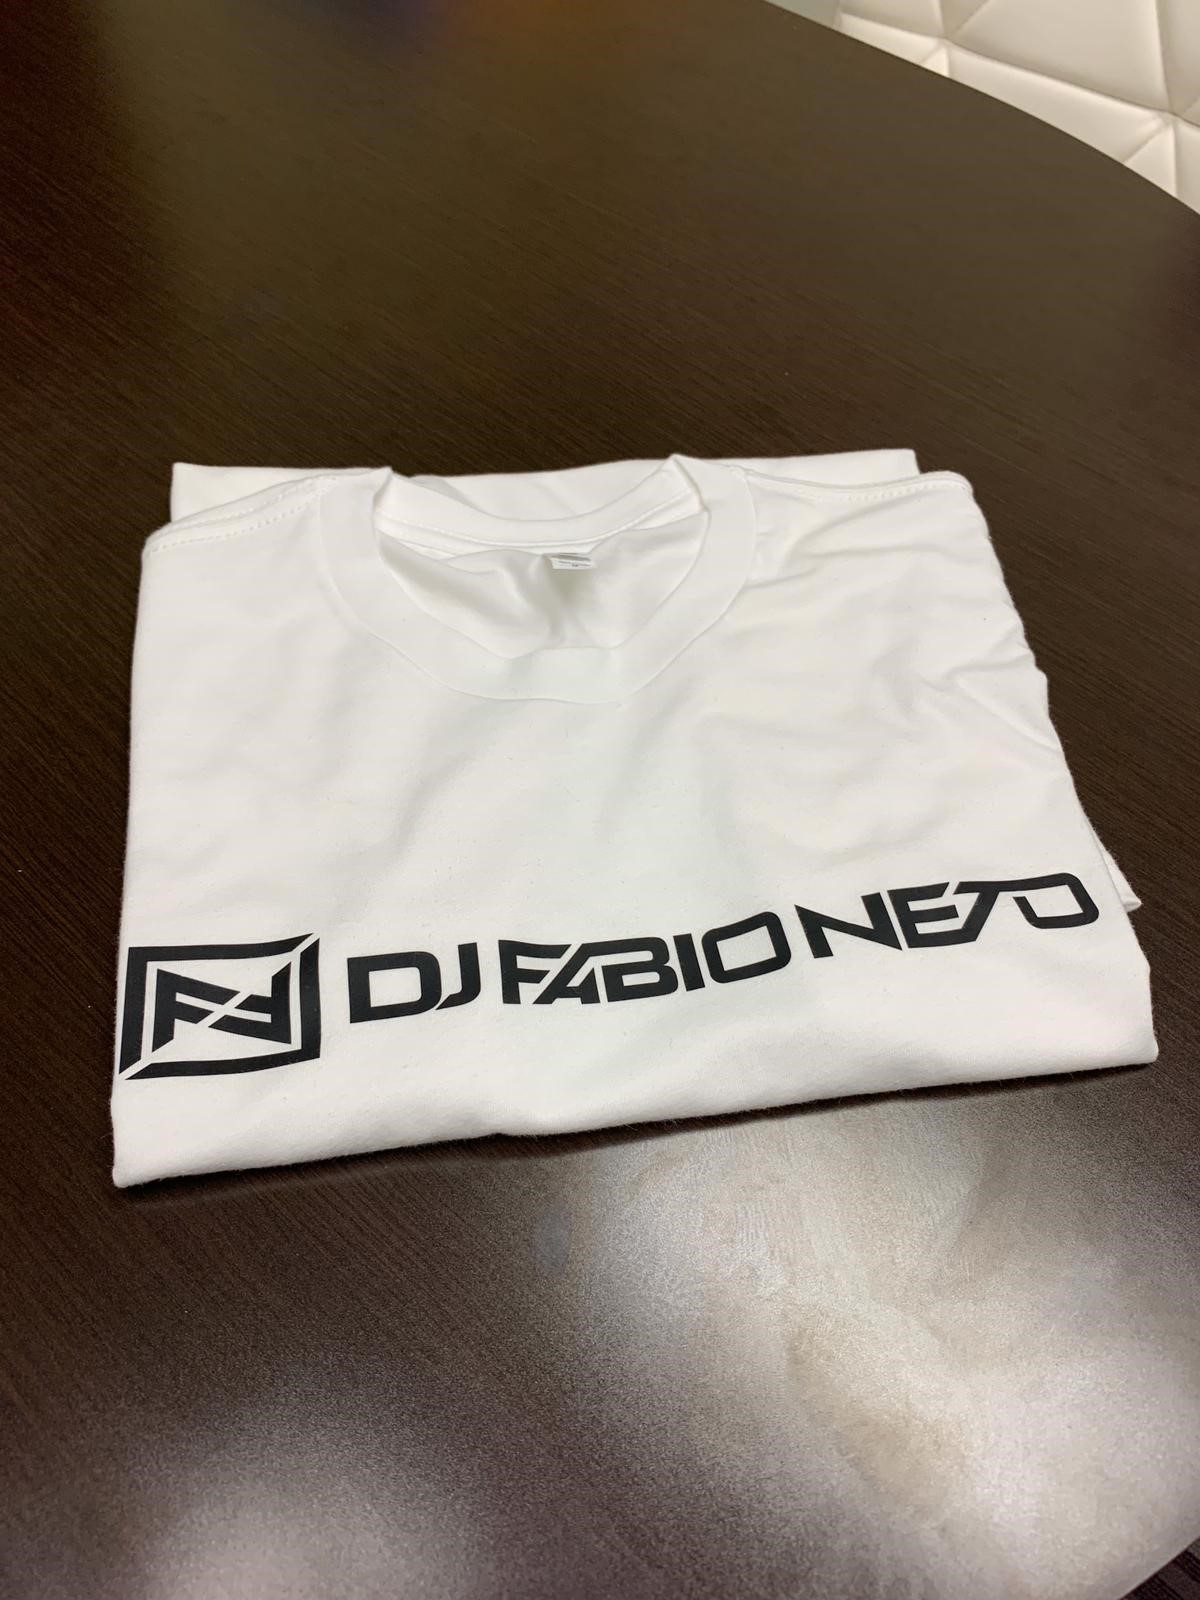 Promotional Products   Corporate Gifts & Promotional Specialities   Bars, Entertainment Venues   Orlando, FL   T-Shirts   Custom T- Shirts   DJ Fábio Neto   Kissimmee   wedding   Party   Events